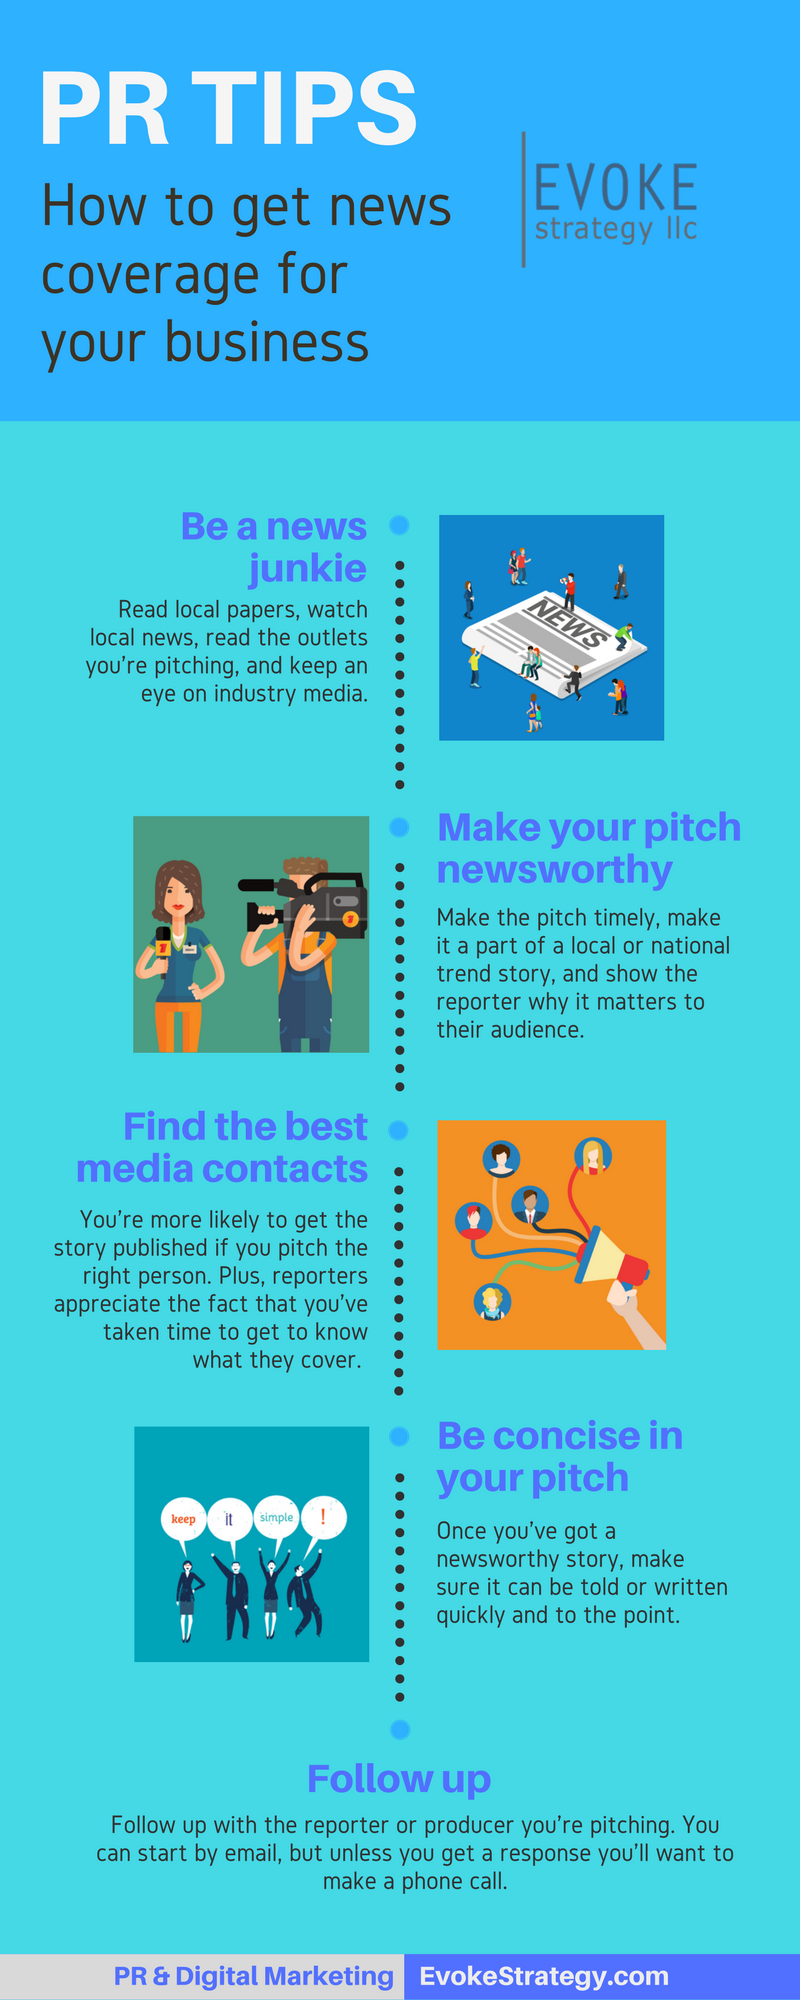 PR Tips Infographic on how to get press coverage for your business